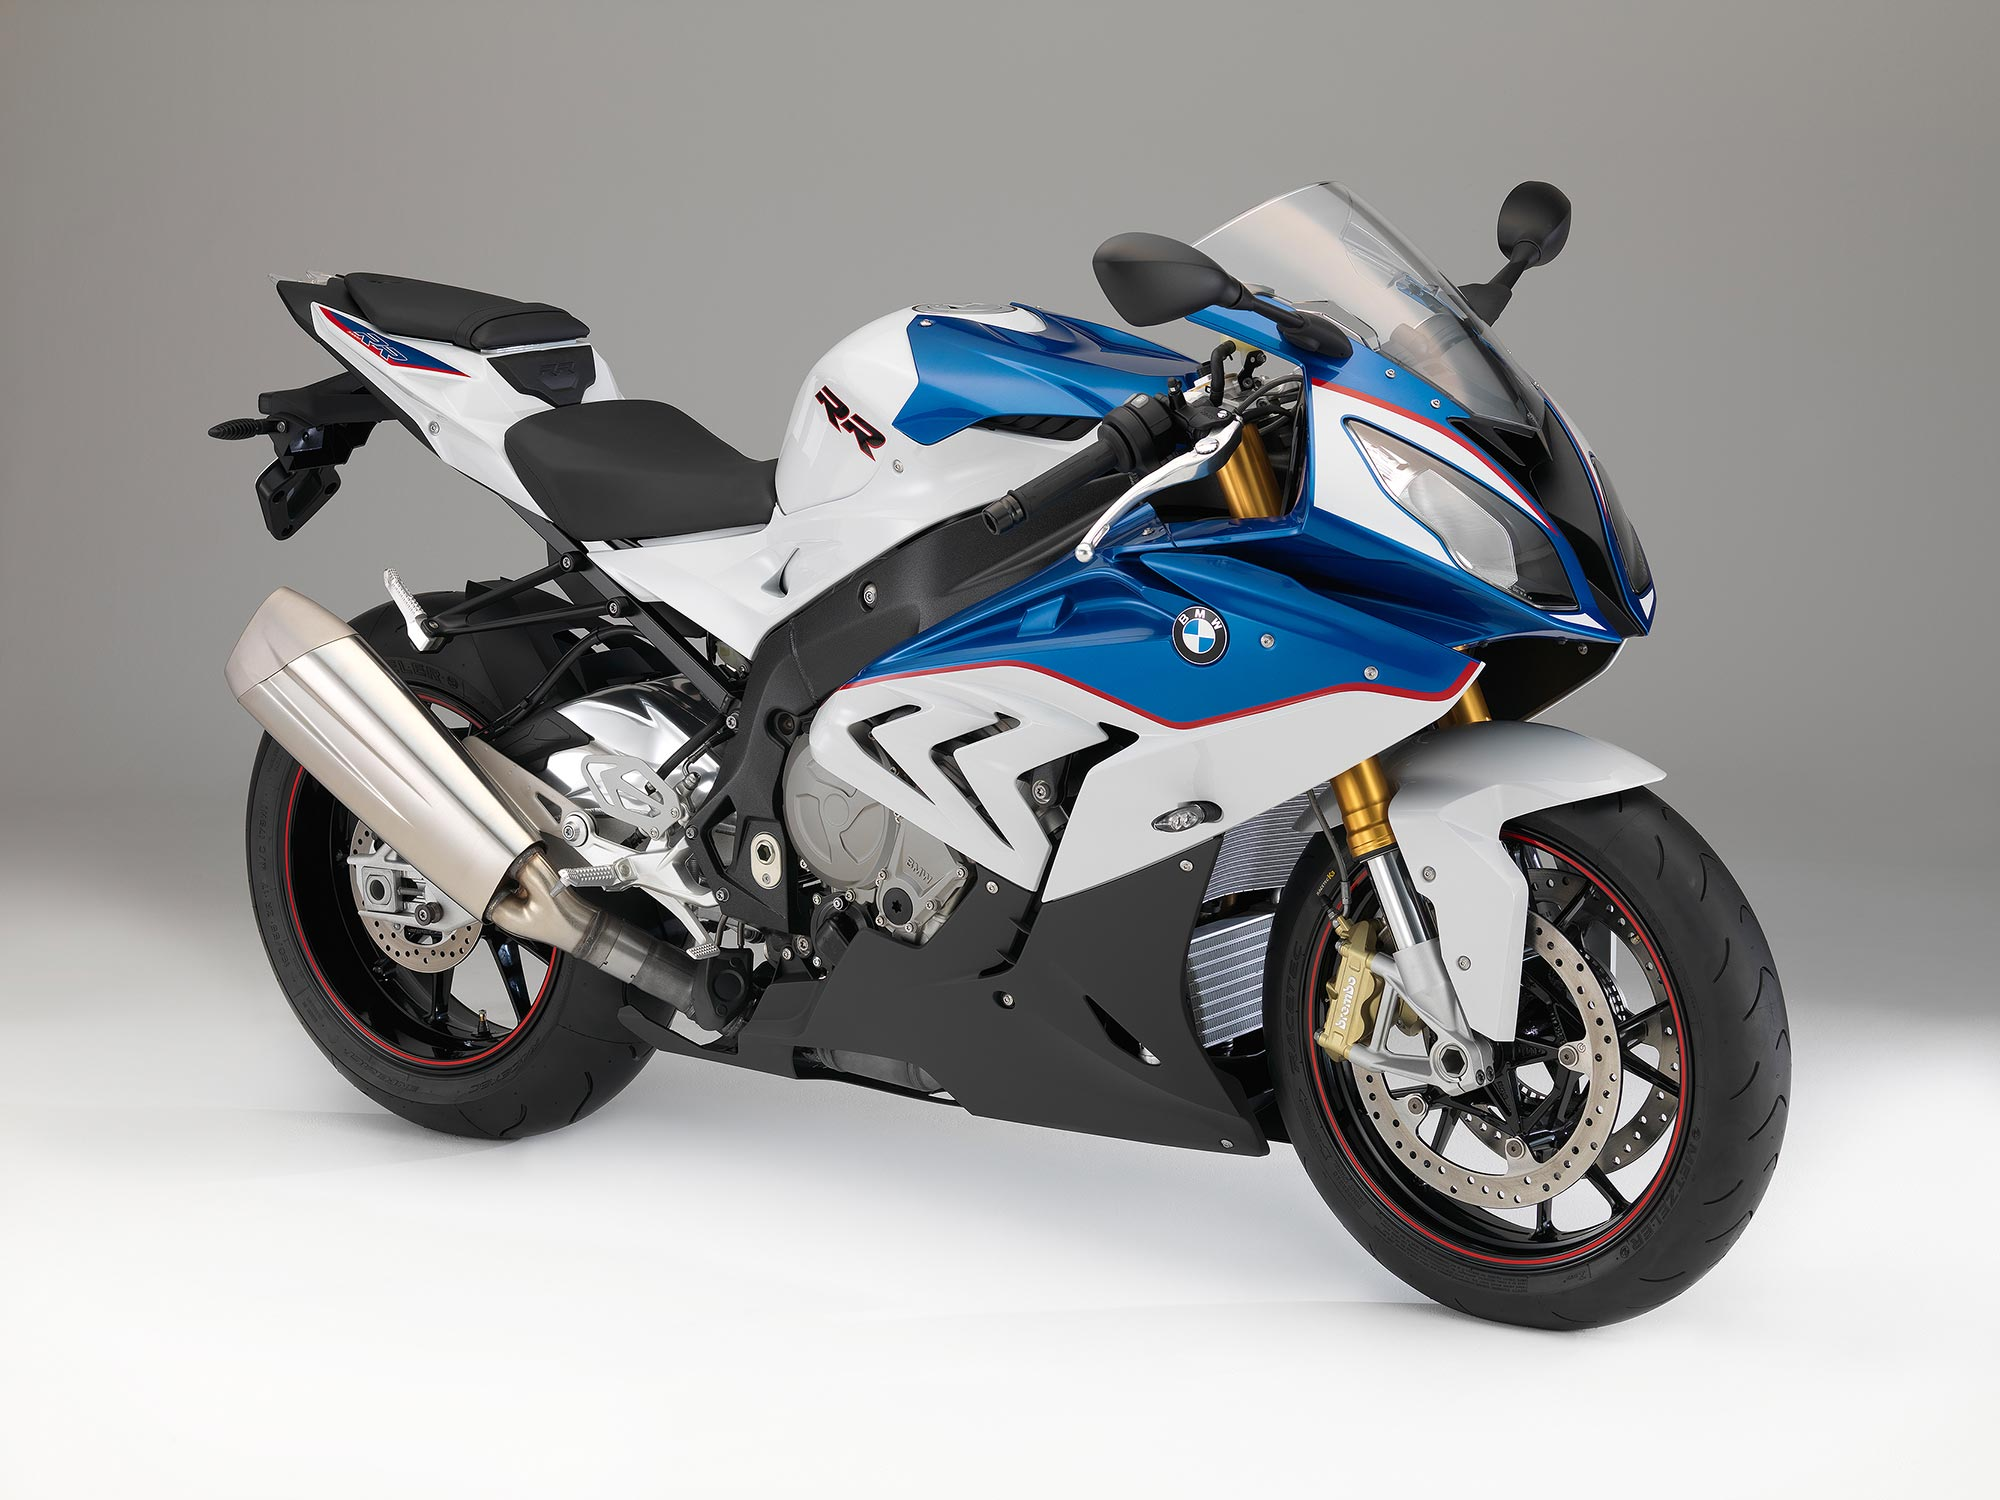 2015 Bmw S1000rr  199hp, New Chassis, & Cruise Control